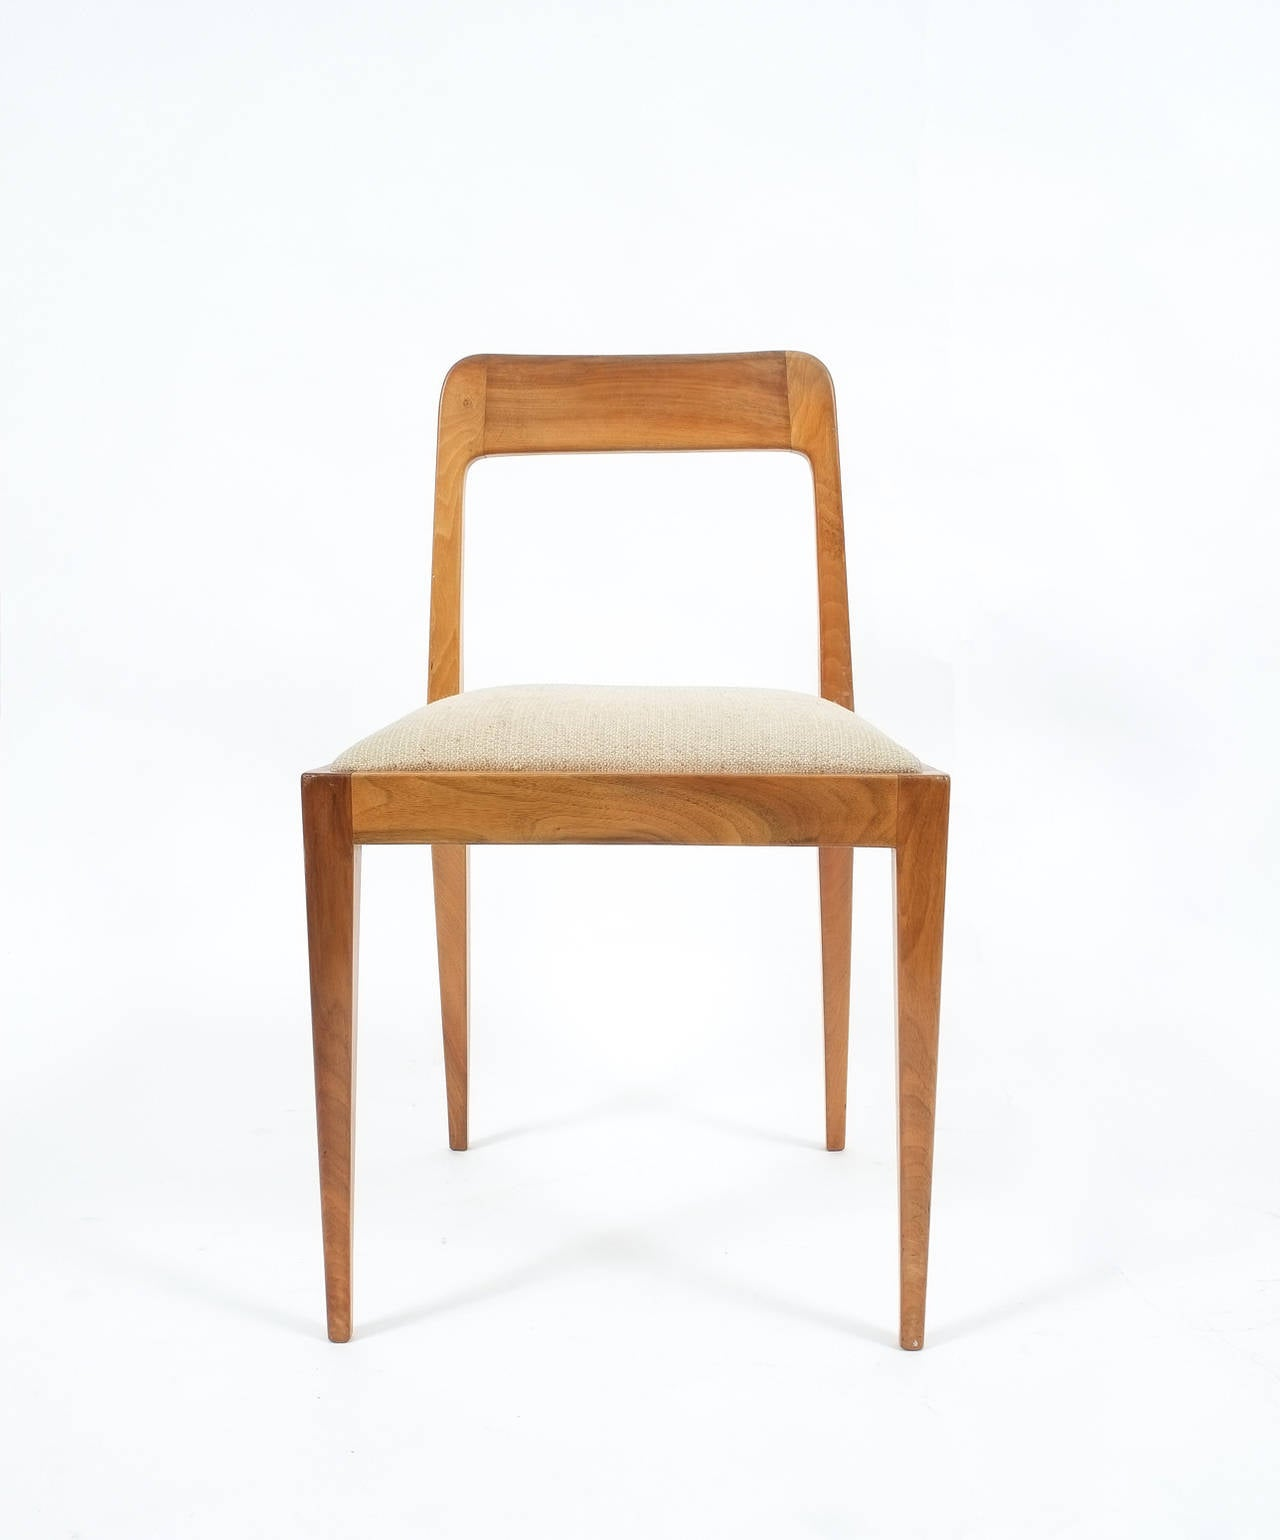 Austrian Set of Six Carl Auböck Wooden Chairs Mid-Century, 1950 For Sale